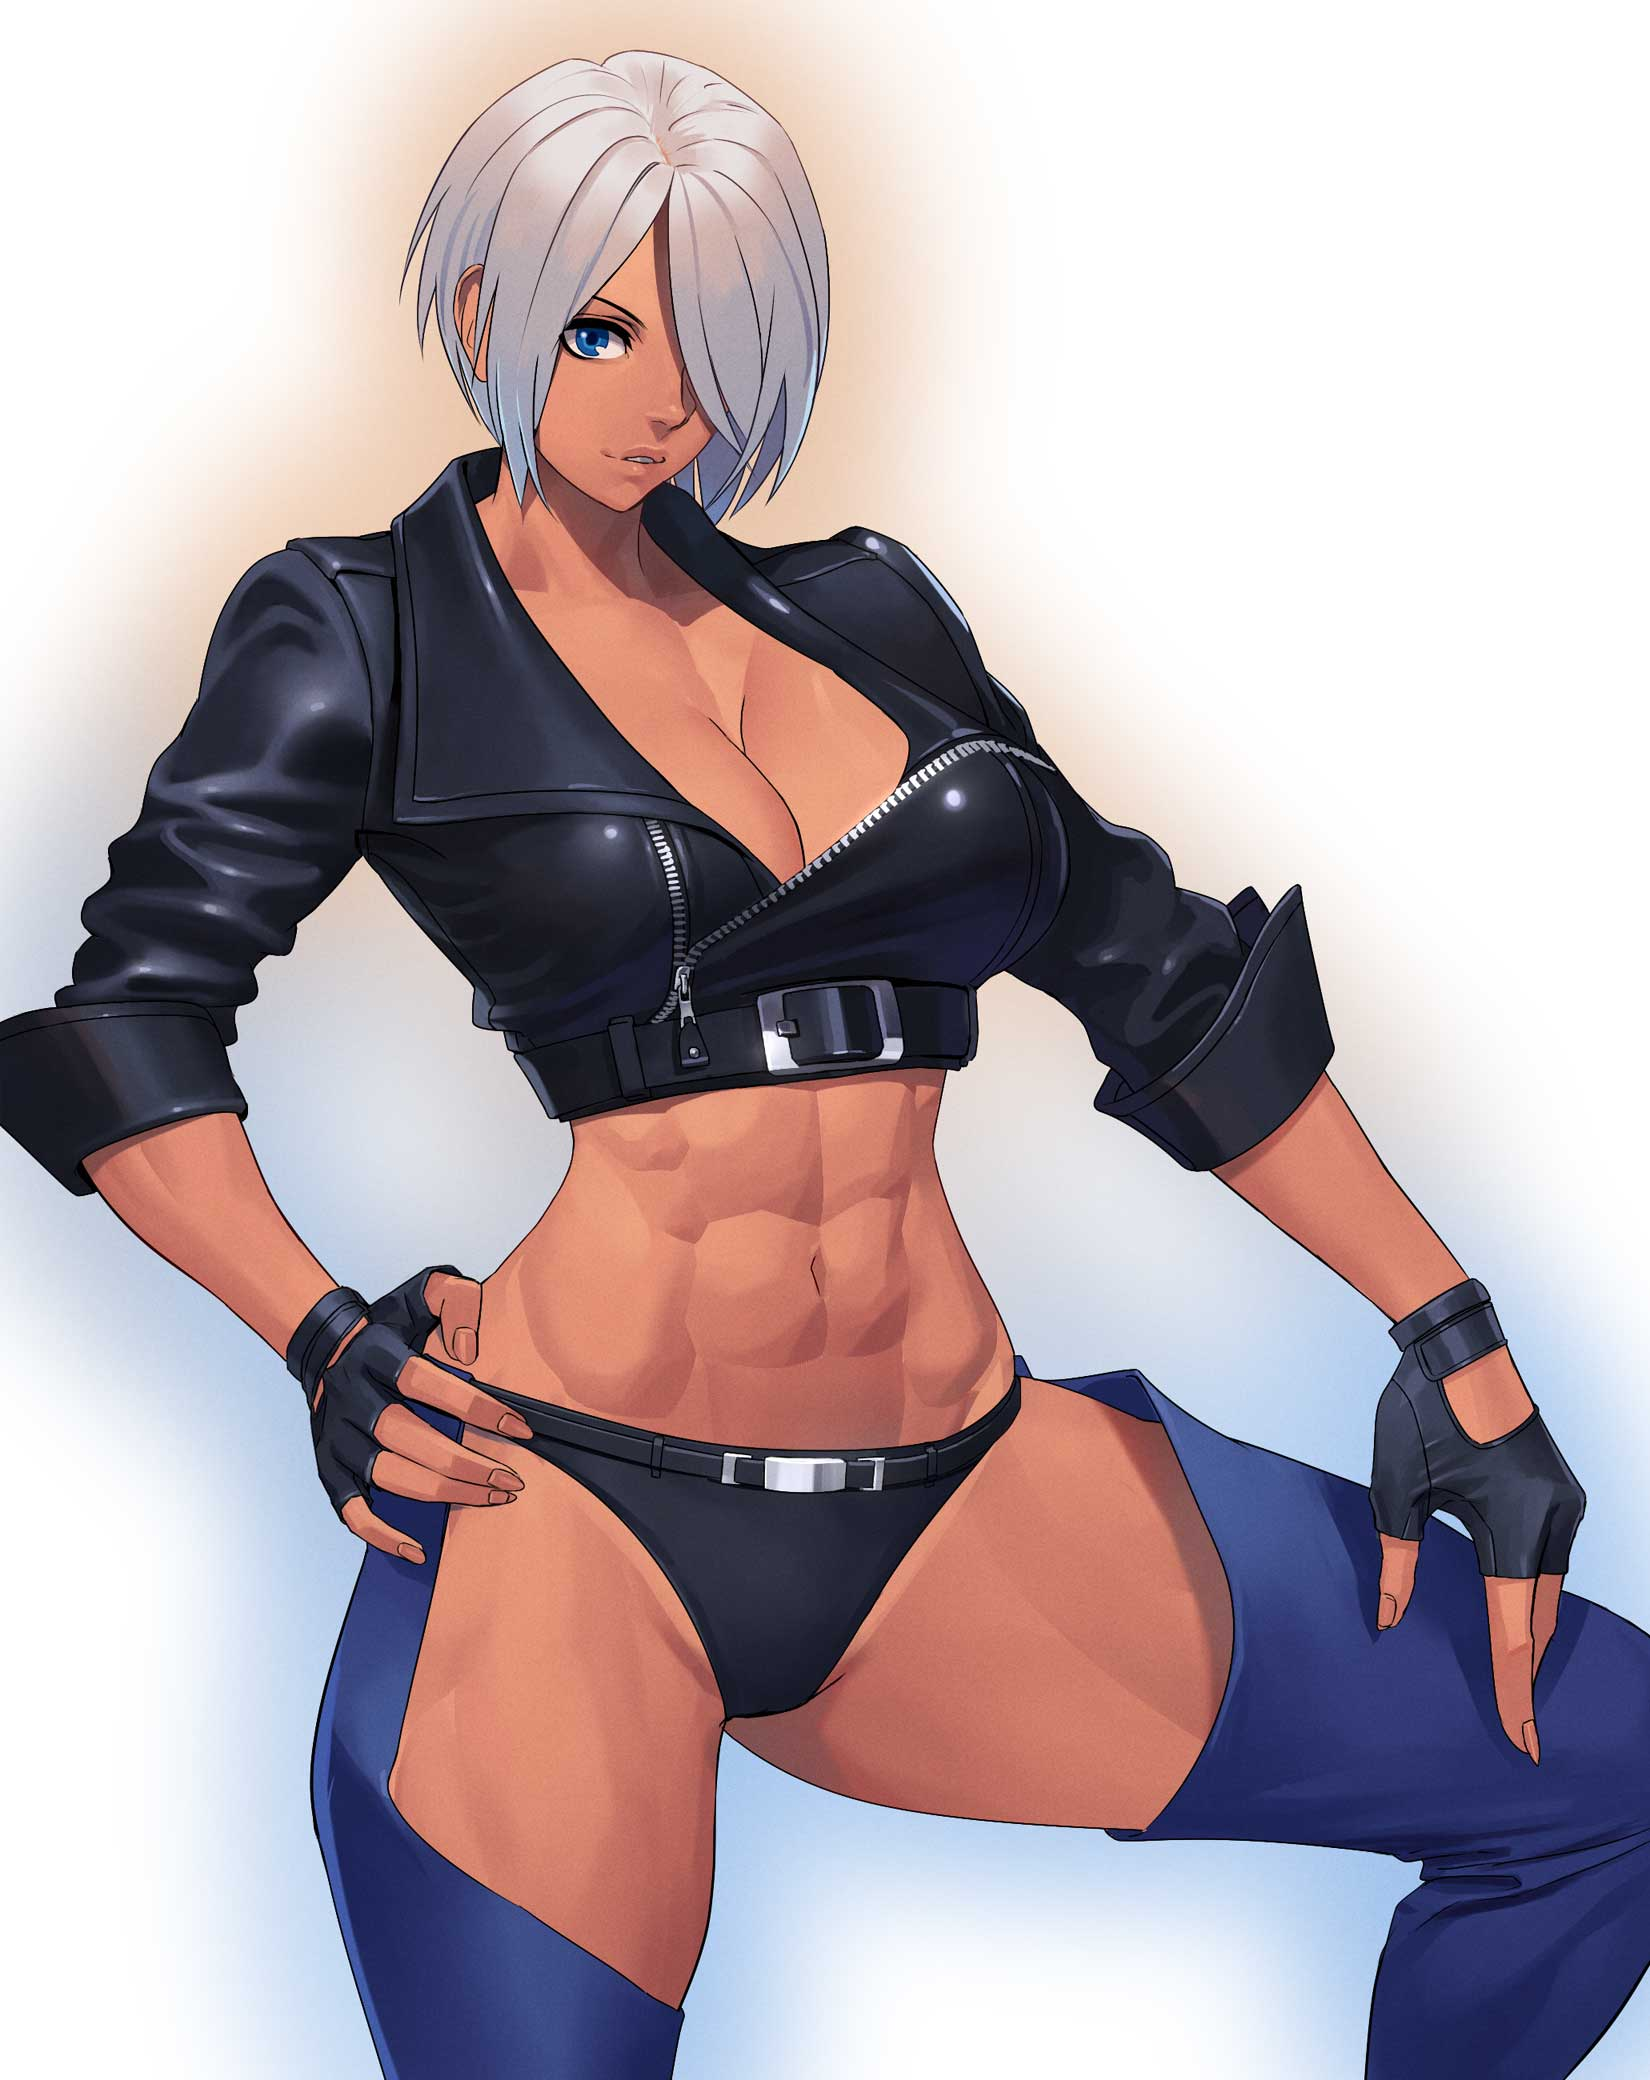 1girl a abs angel_(kof) bangs black_panties bra breasts chaps cleavage commentary_request cropped_jacket feet_out_of_frame fingerless_gloves gloves gradient gradient_background hair_over_one_eye highres jacket large_breasts leather midriff muscle muscular_female ogami panties silver_hair snk solo strapless strapless_bra the_king_of_fighters toned underwear white_hair